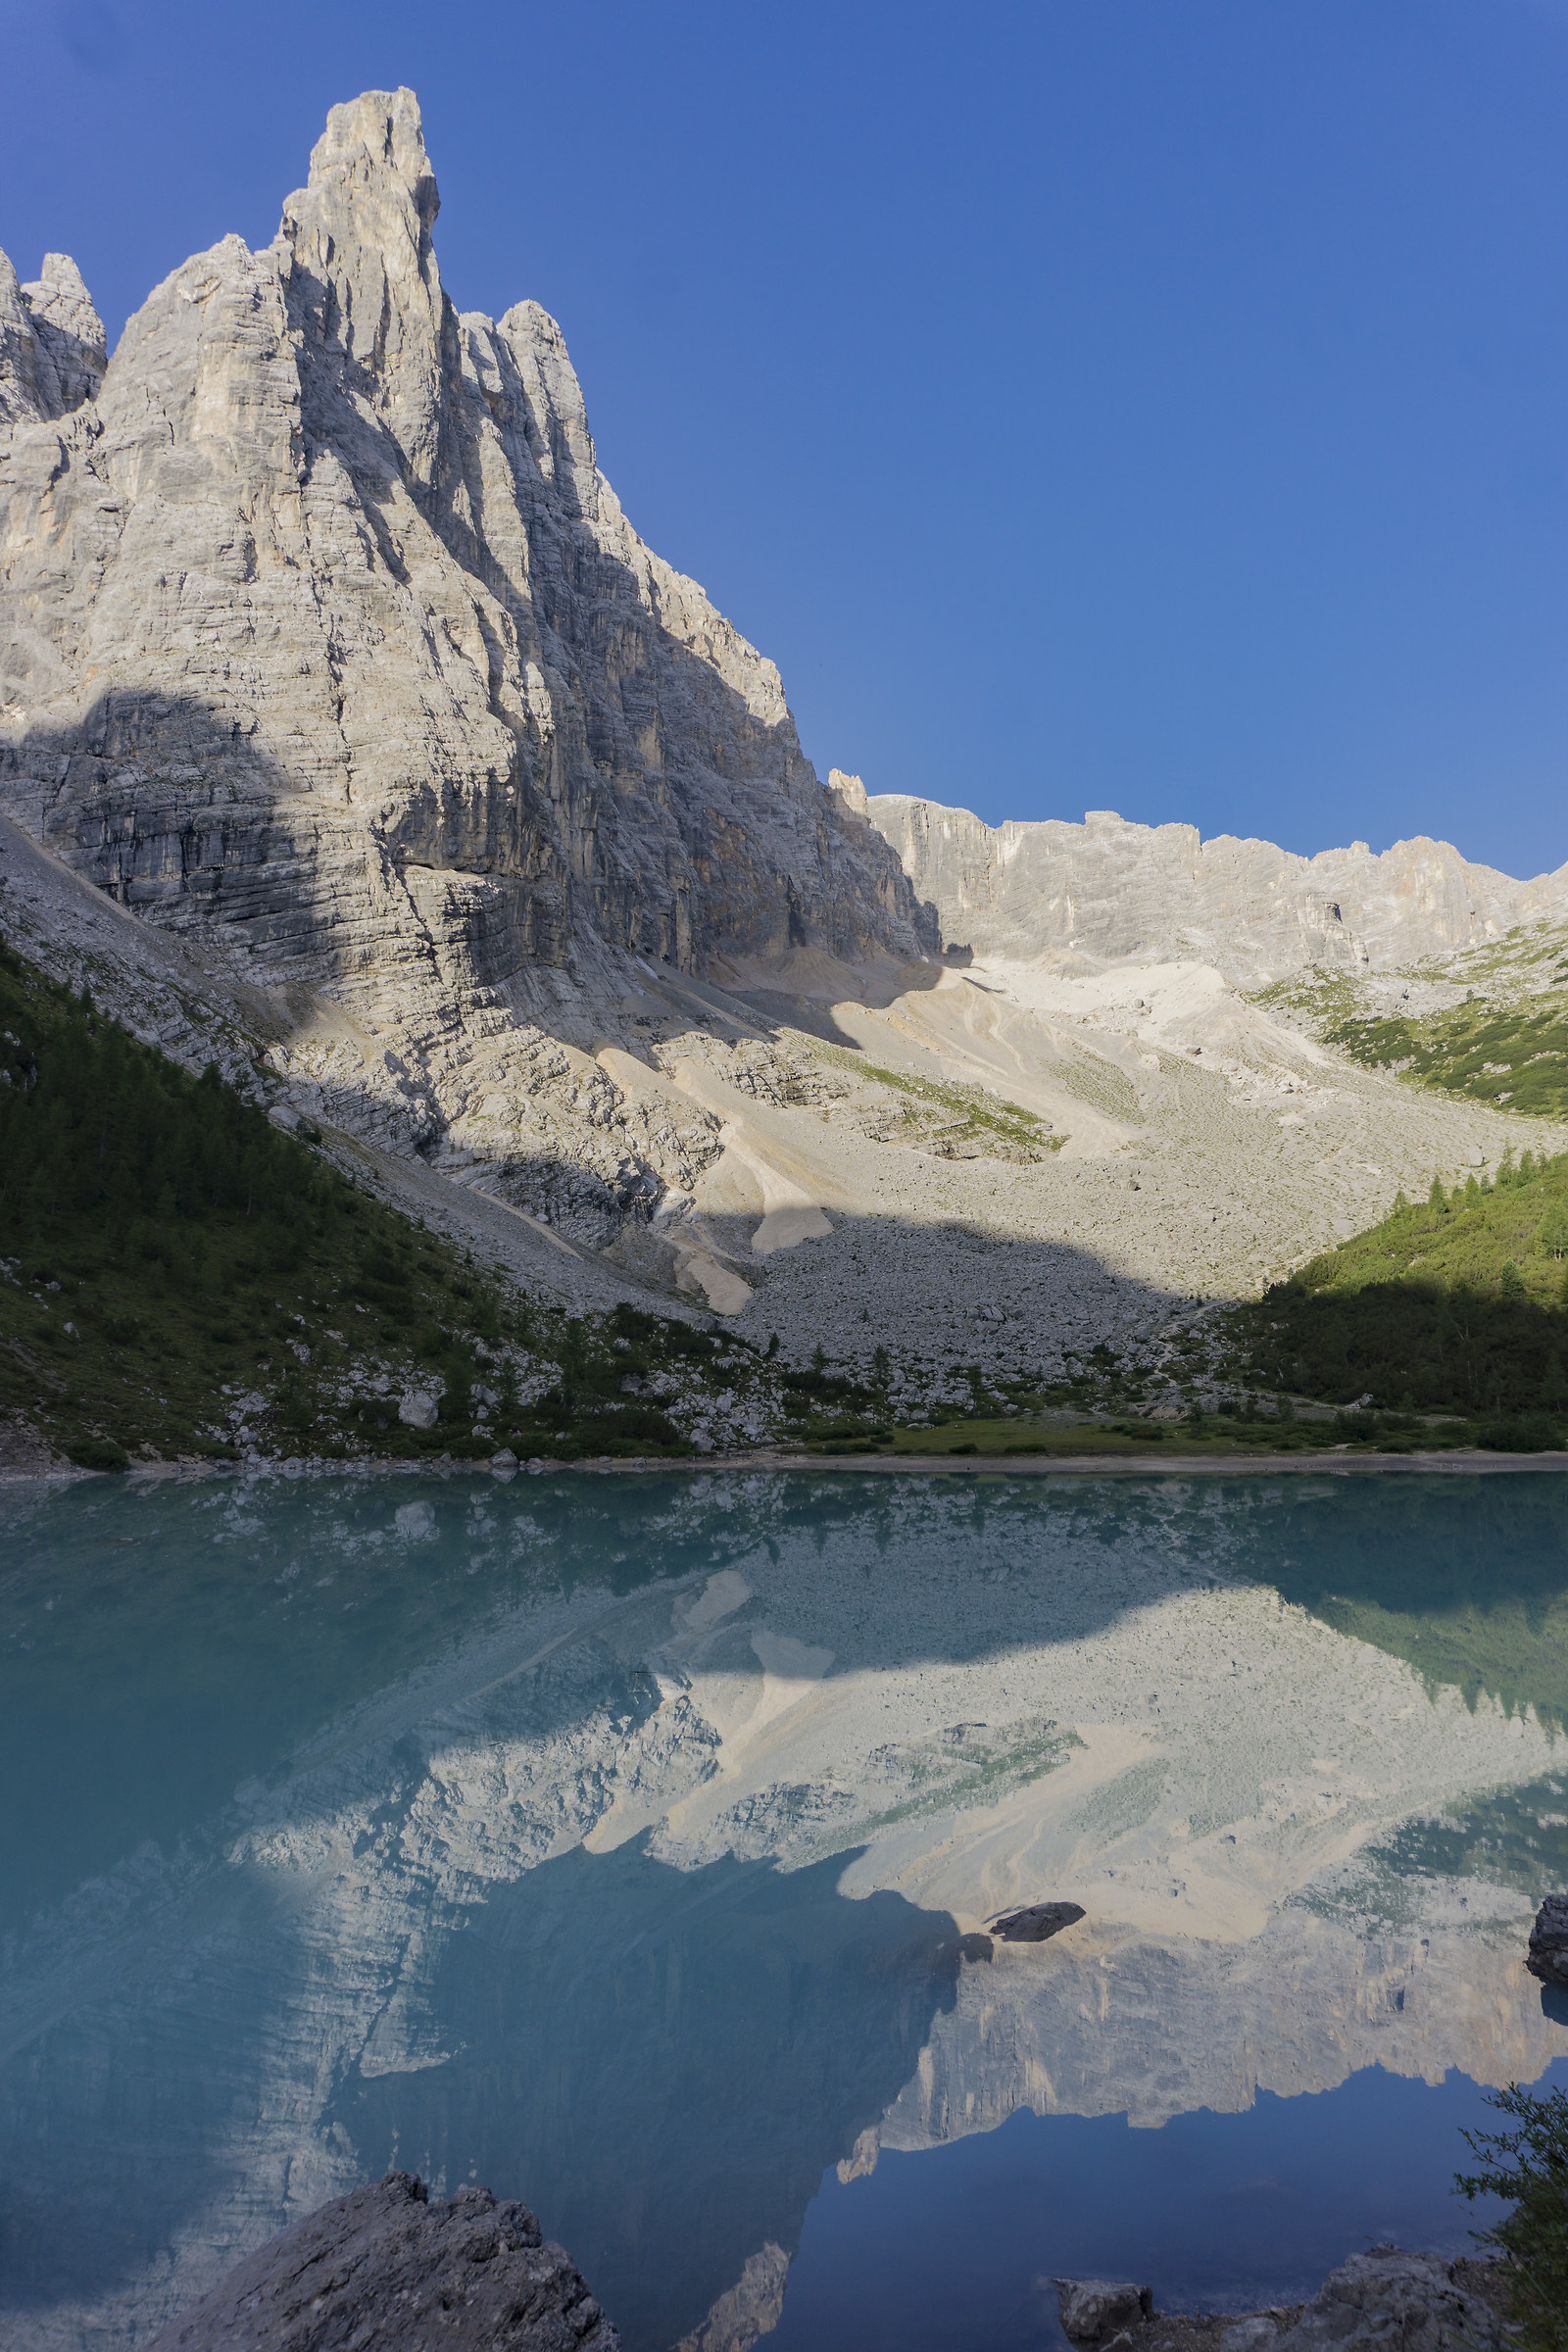 Reflections on the Sorapiss...